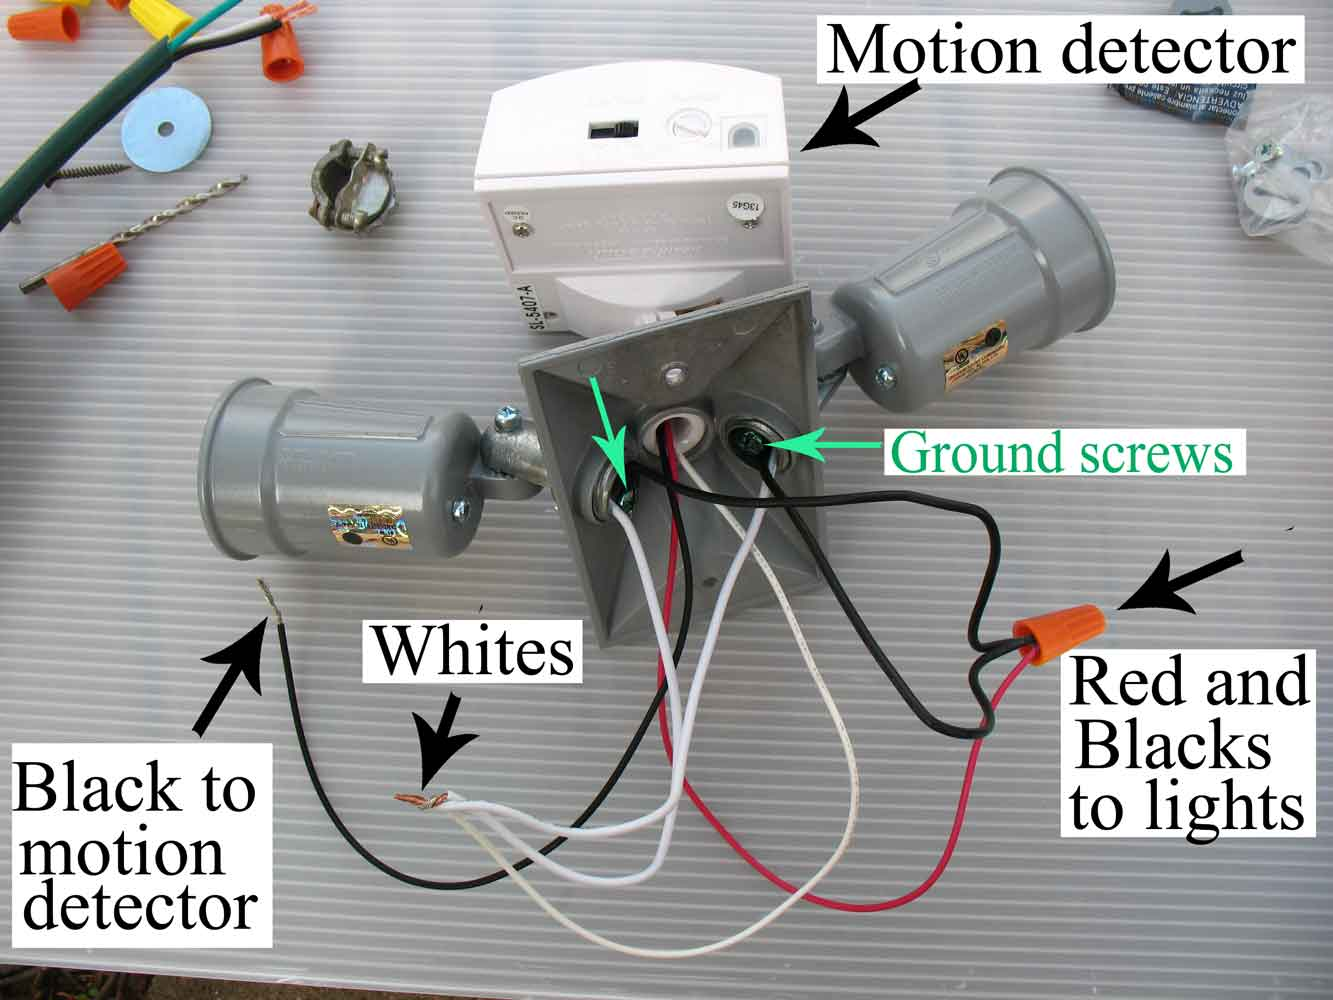 IMG_0014 Motion detector how to wire motion sensor occupancy sensors motion sensor flood light wiring diagram at soozxer.org